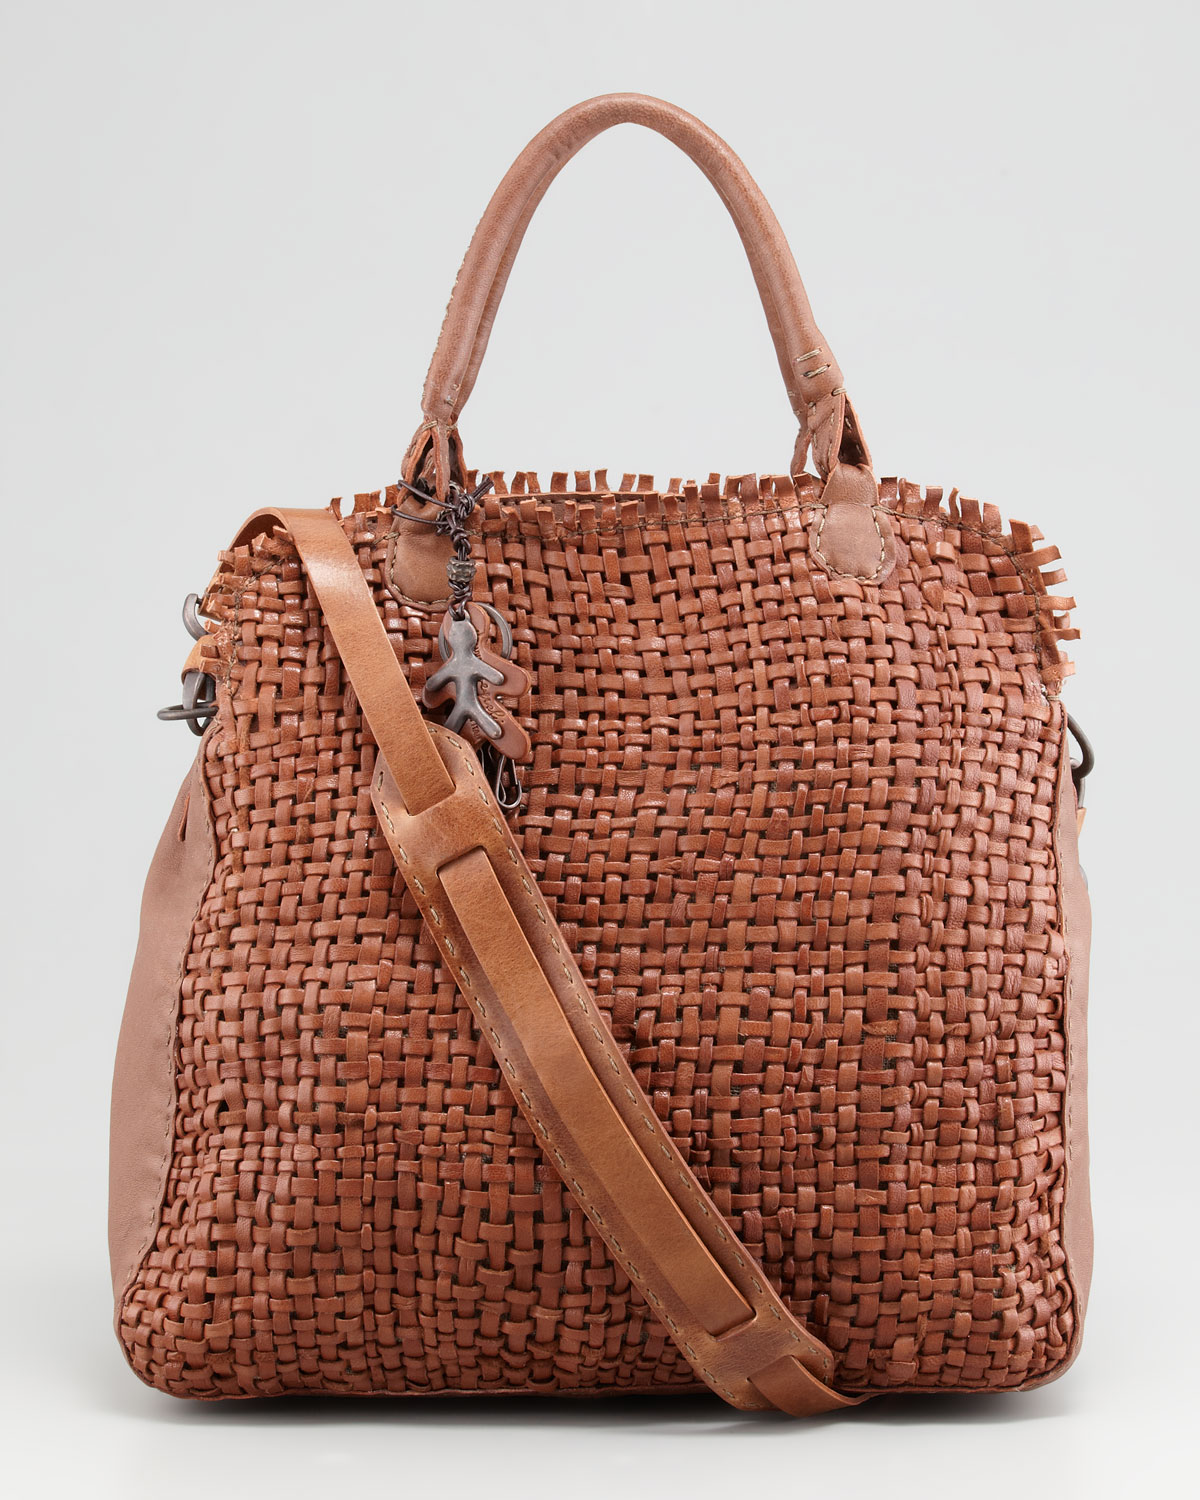 Brand-new Lyst - Henry Beguelin Woven Leather Tote Bag in Brown UM42 e5025aa724c54